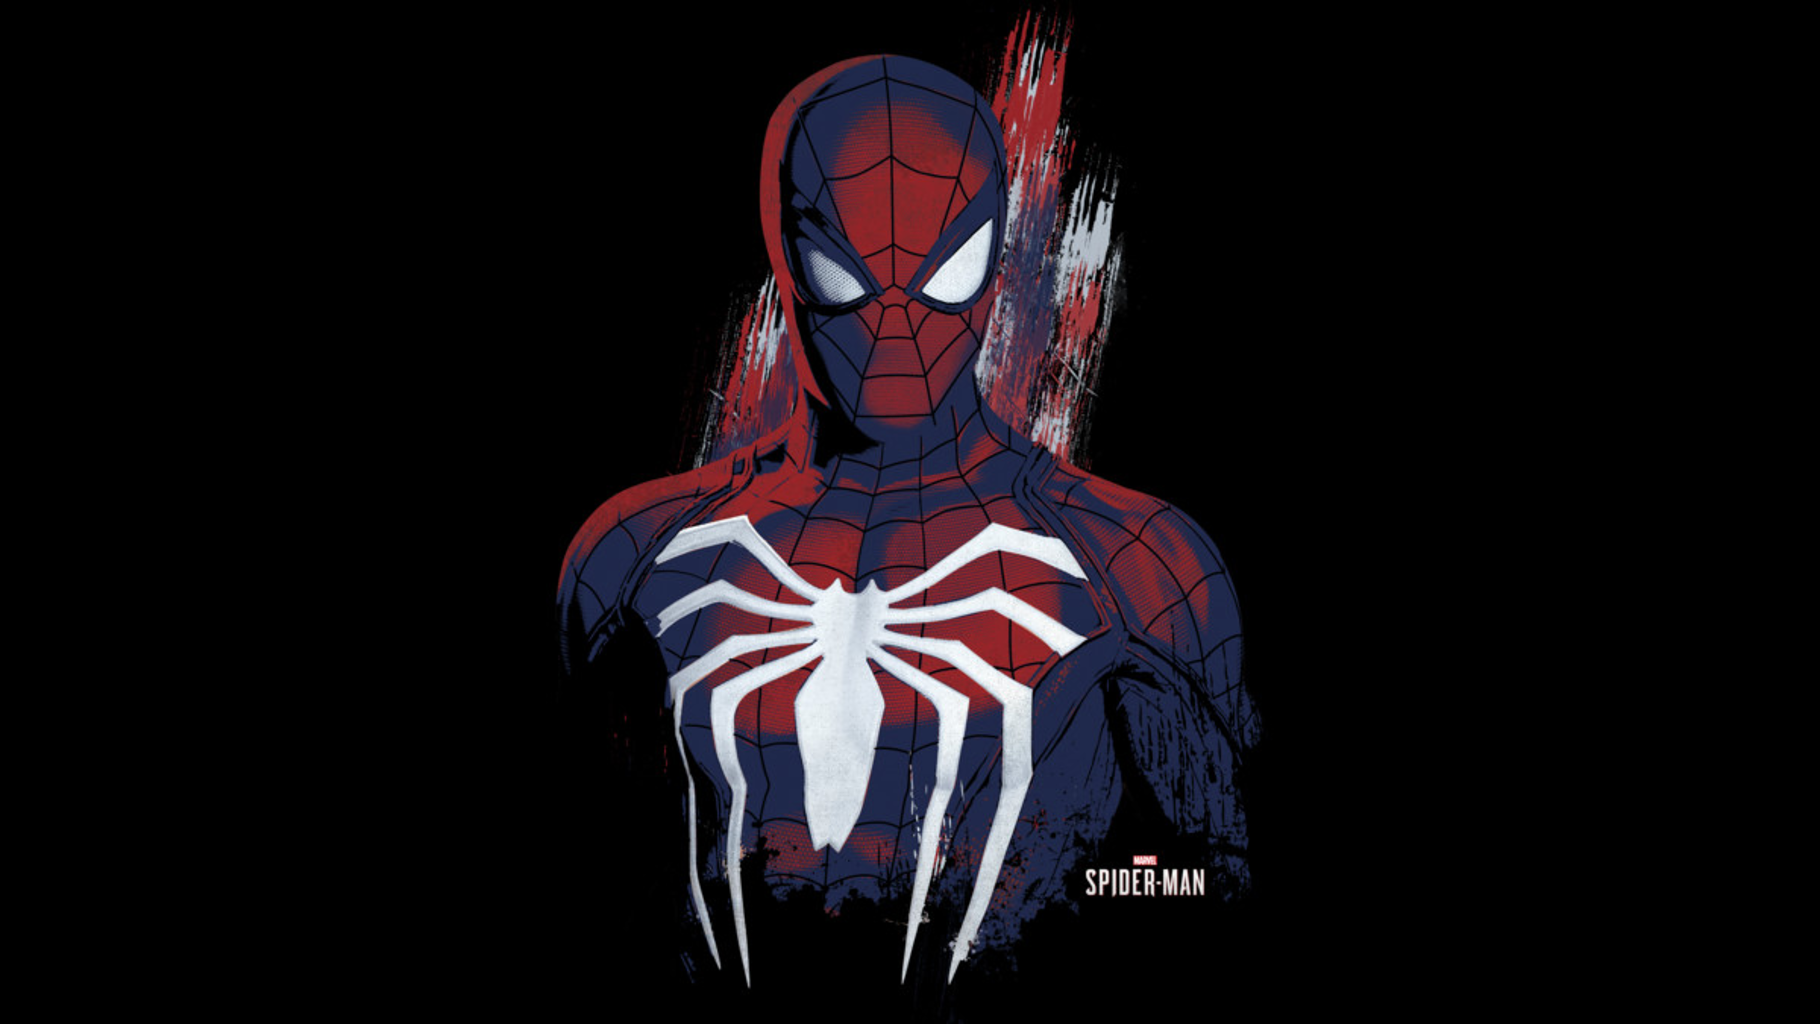 Design by Humans: Painted Spidey